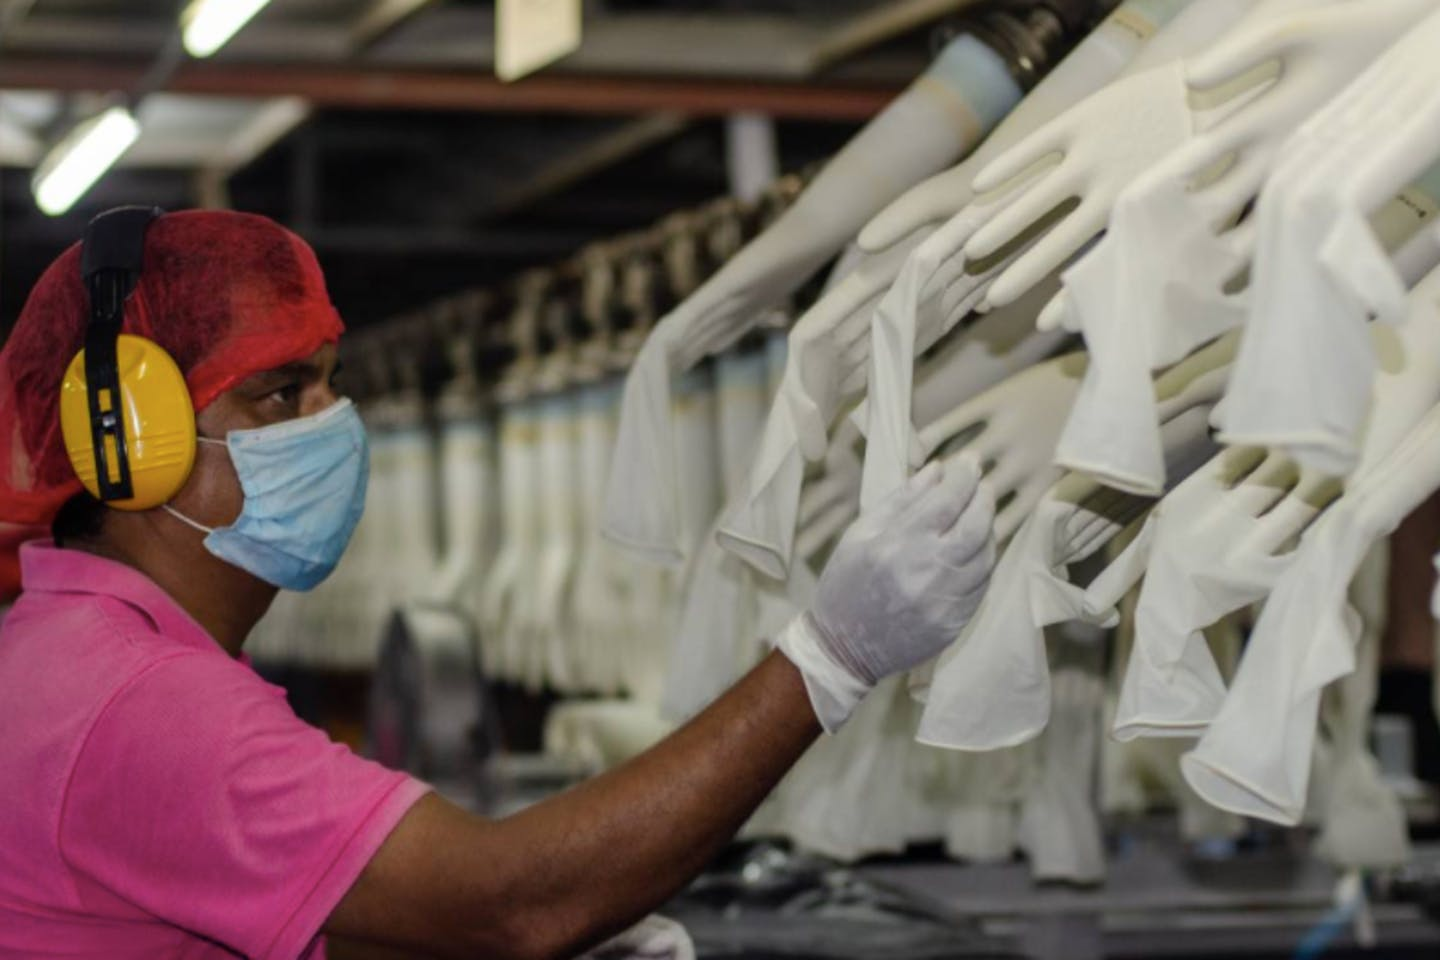 A worker makes checks at the Miditech Gloves' rubber glove factory in Malaysia in 2020.